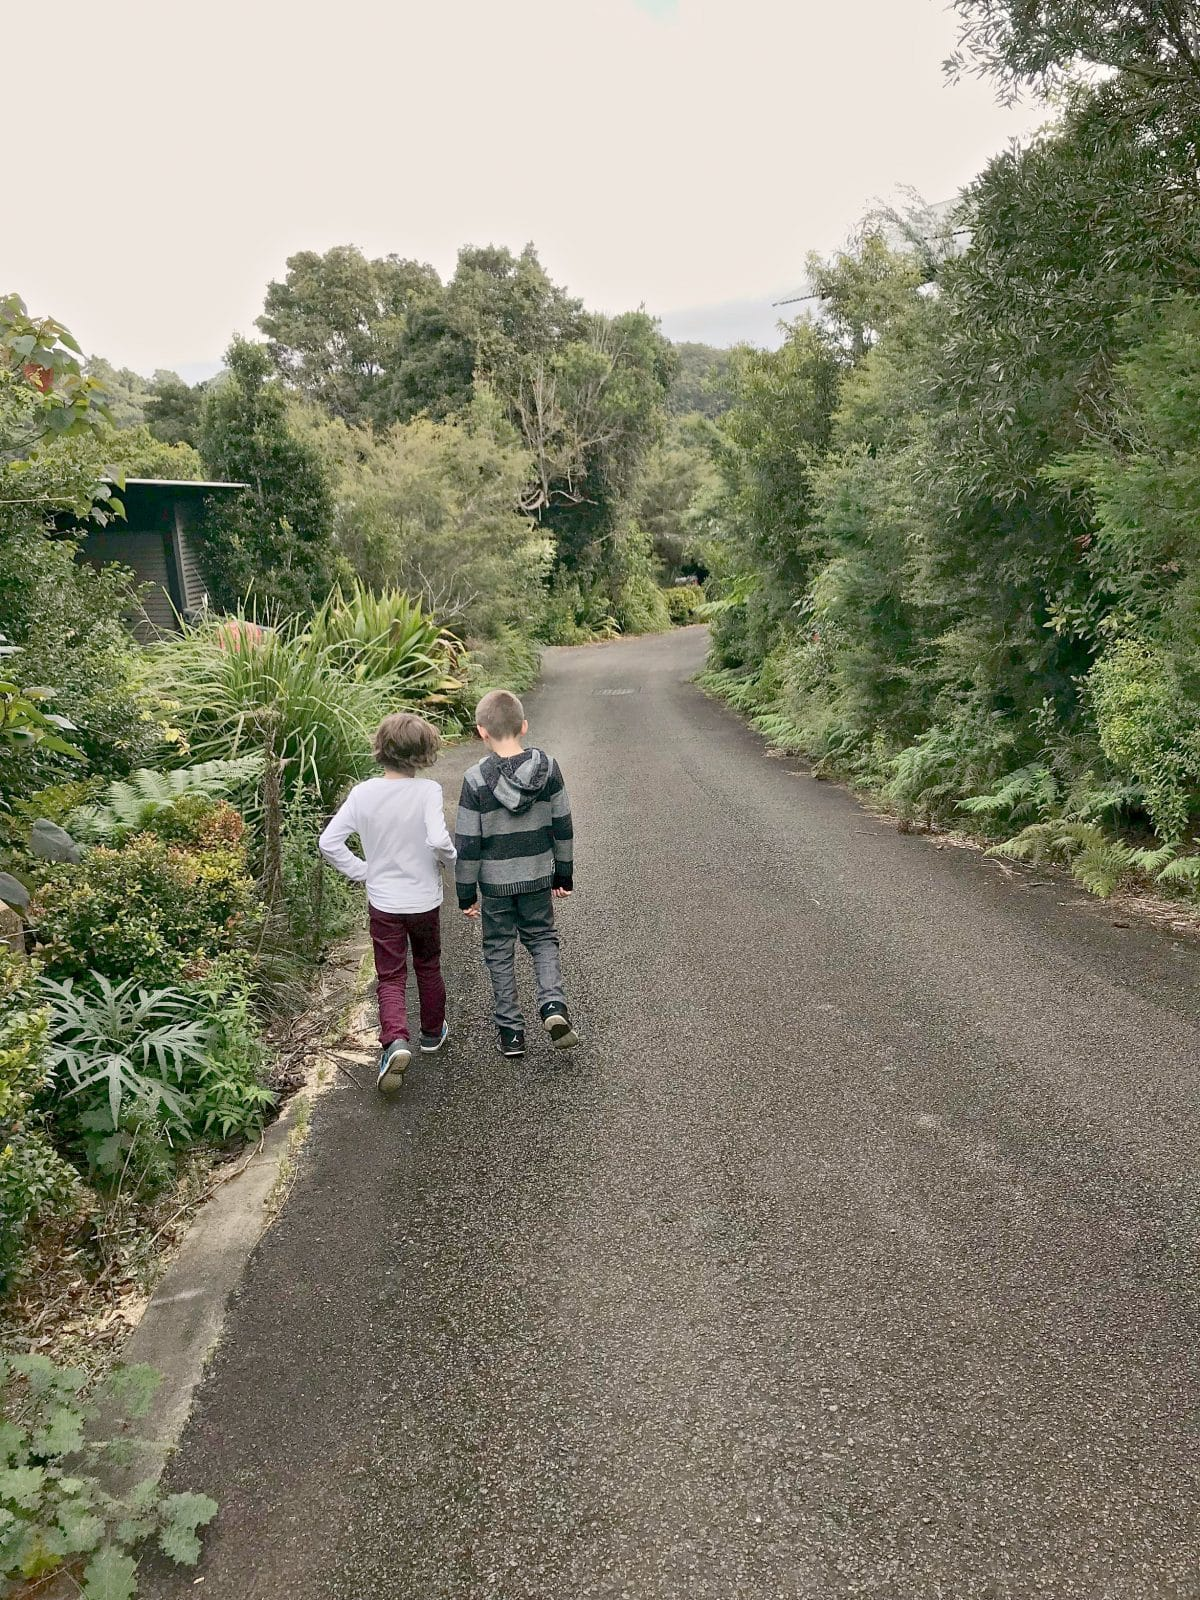 Two boys walking on a road at O'Reilly's Rainforest Retreat